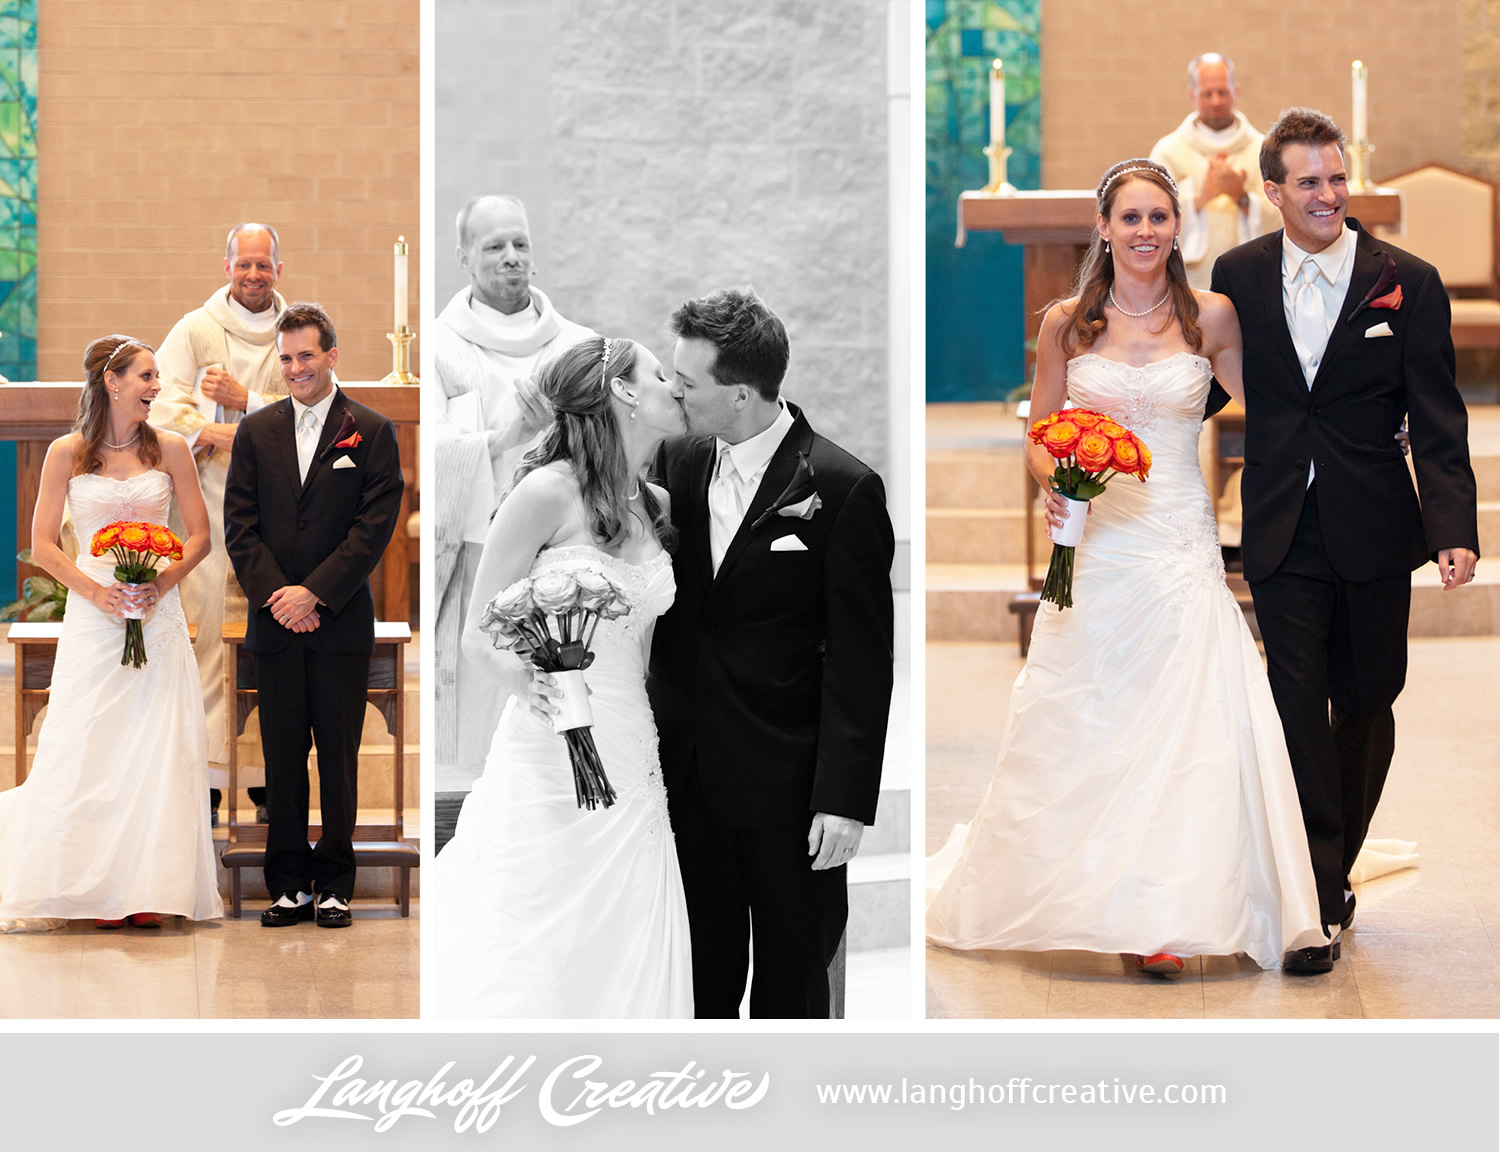 PlainfieldWedding-2013-LanghoffCreative-MattErin-19-photo.jpg